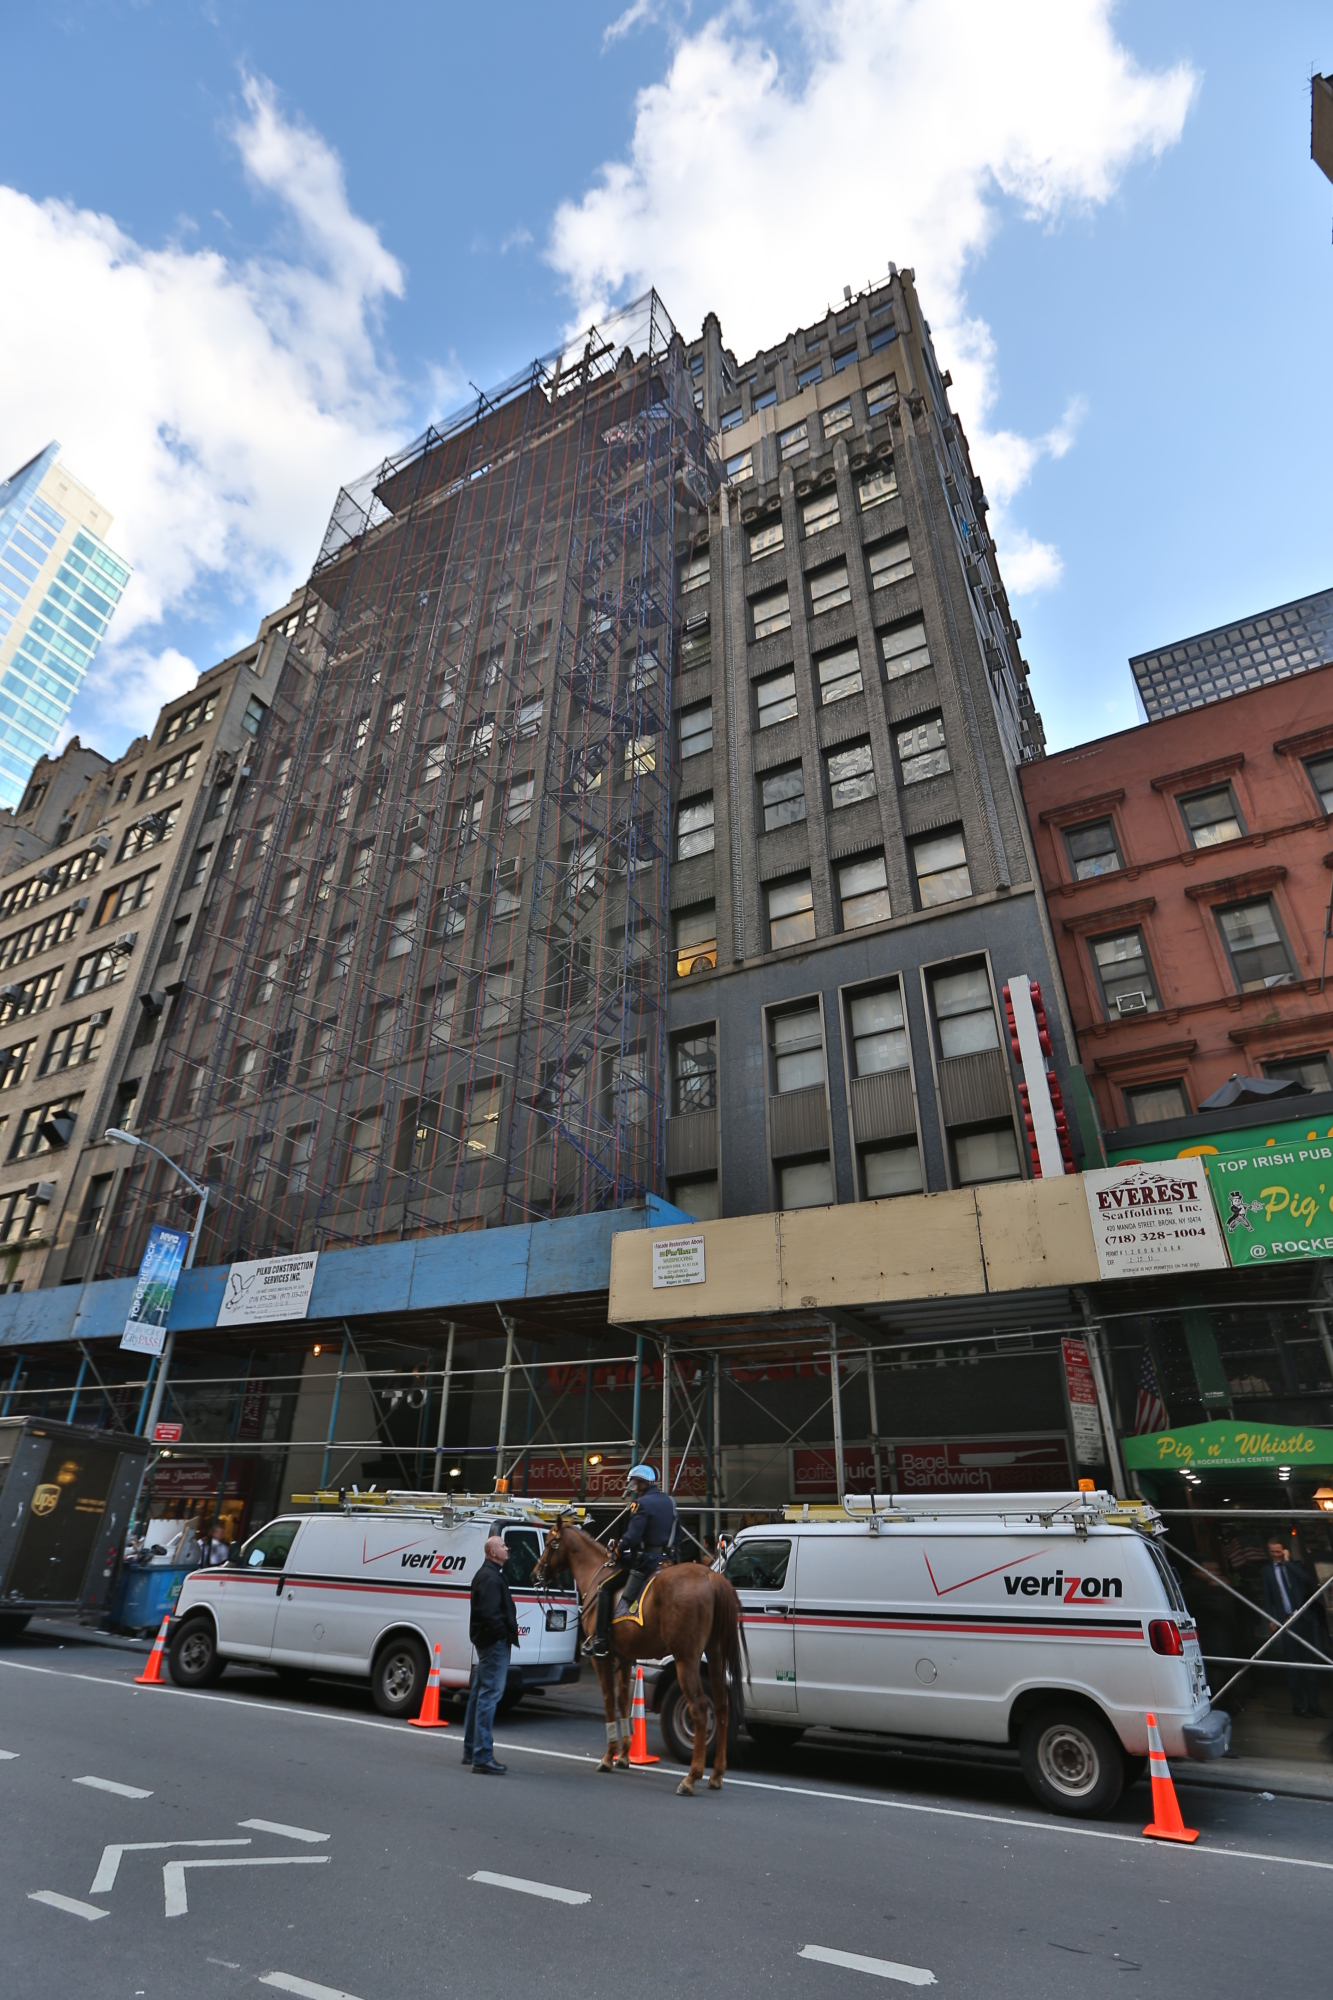 156 west 48th st in nyc: